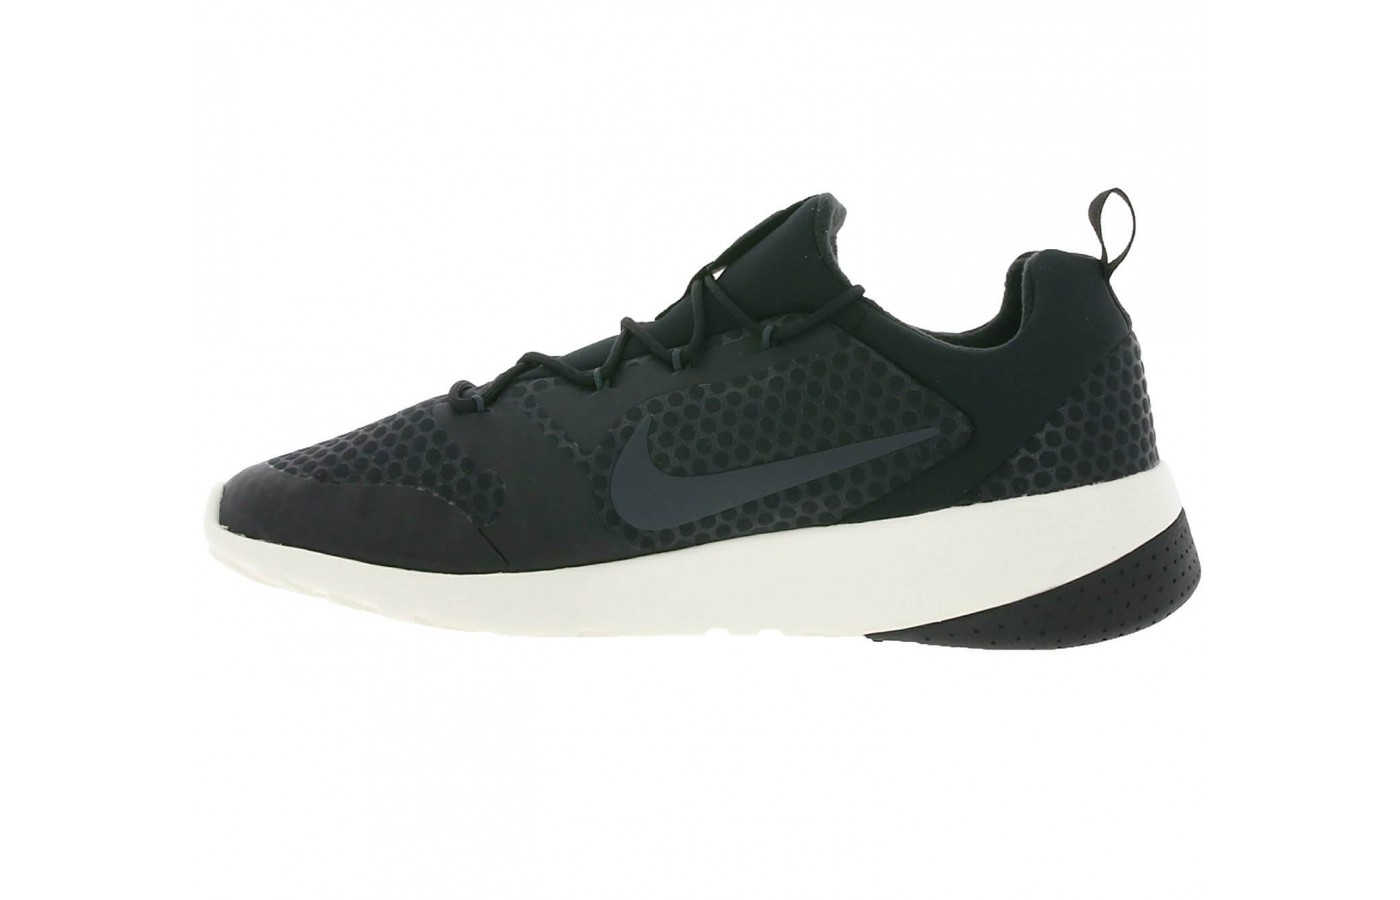 790c253fc6bc ... The closest approximation for what the Nike CK Racer s drop is would be  around 9 mm ...